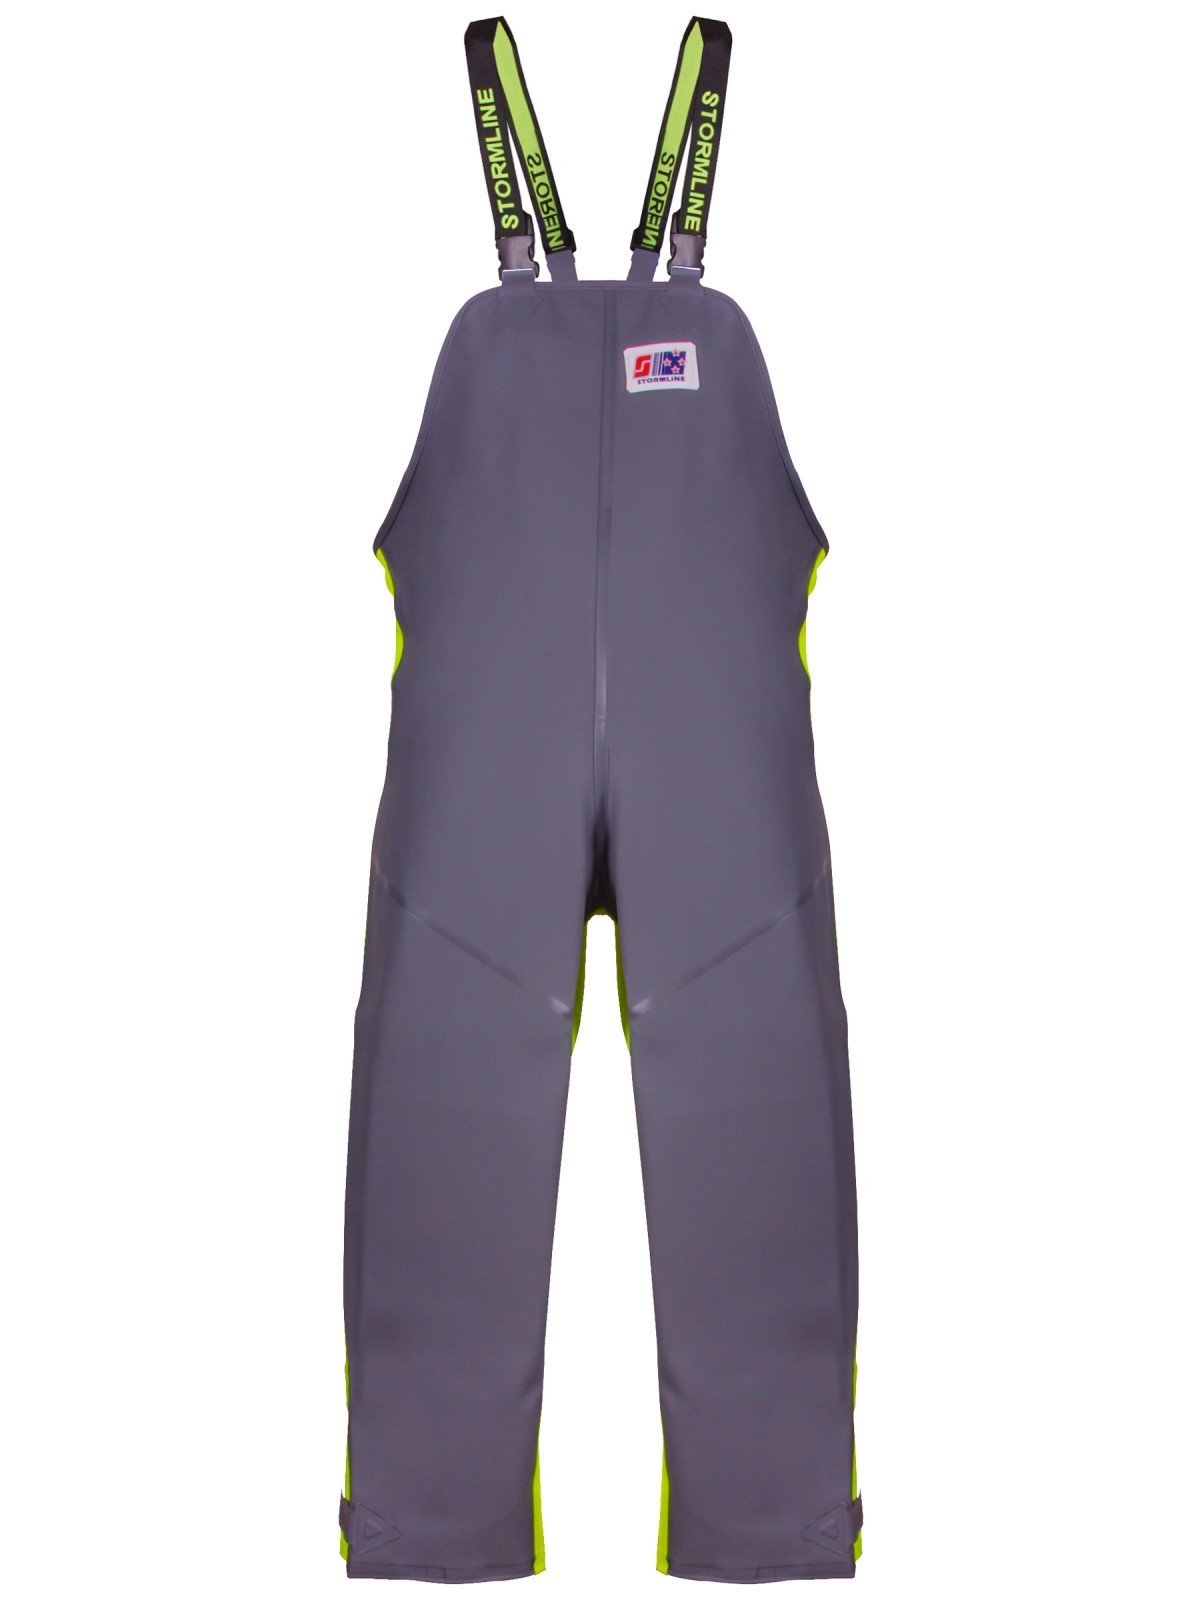 Milford 649 foul weather fishing pants stormline for Foul weather fishing gear